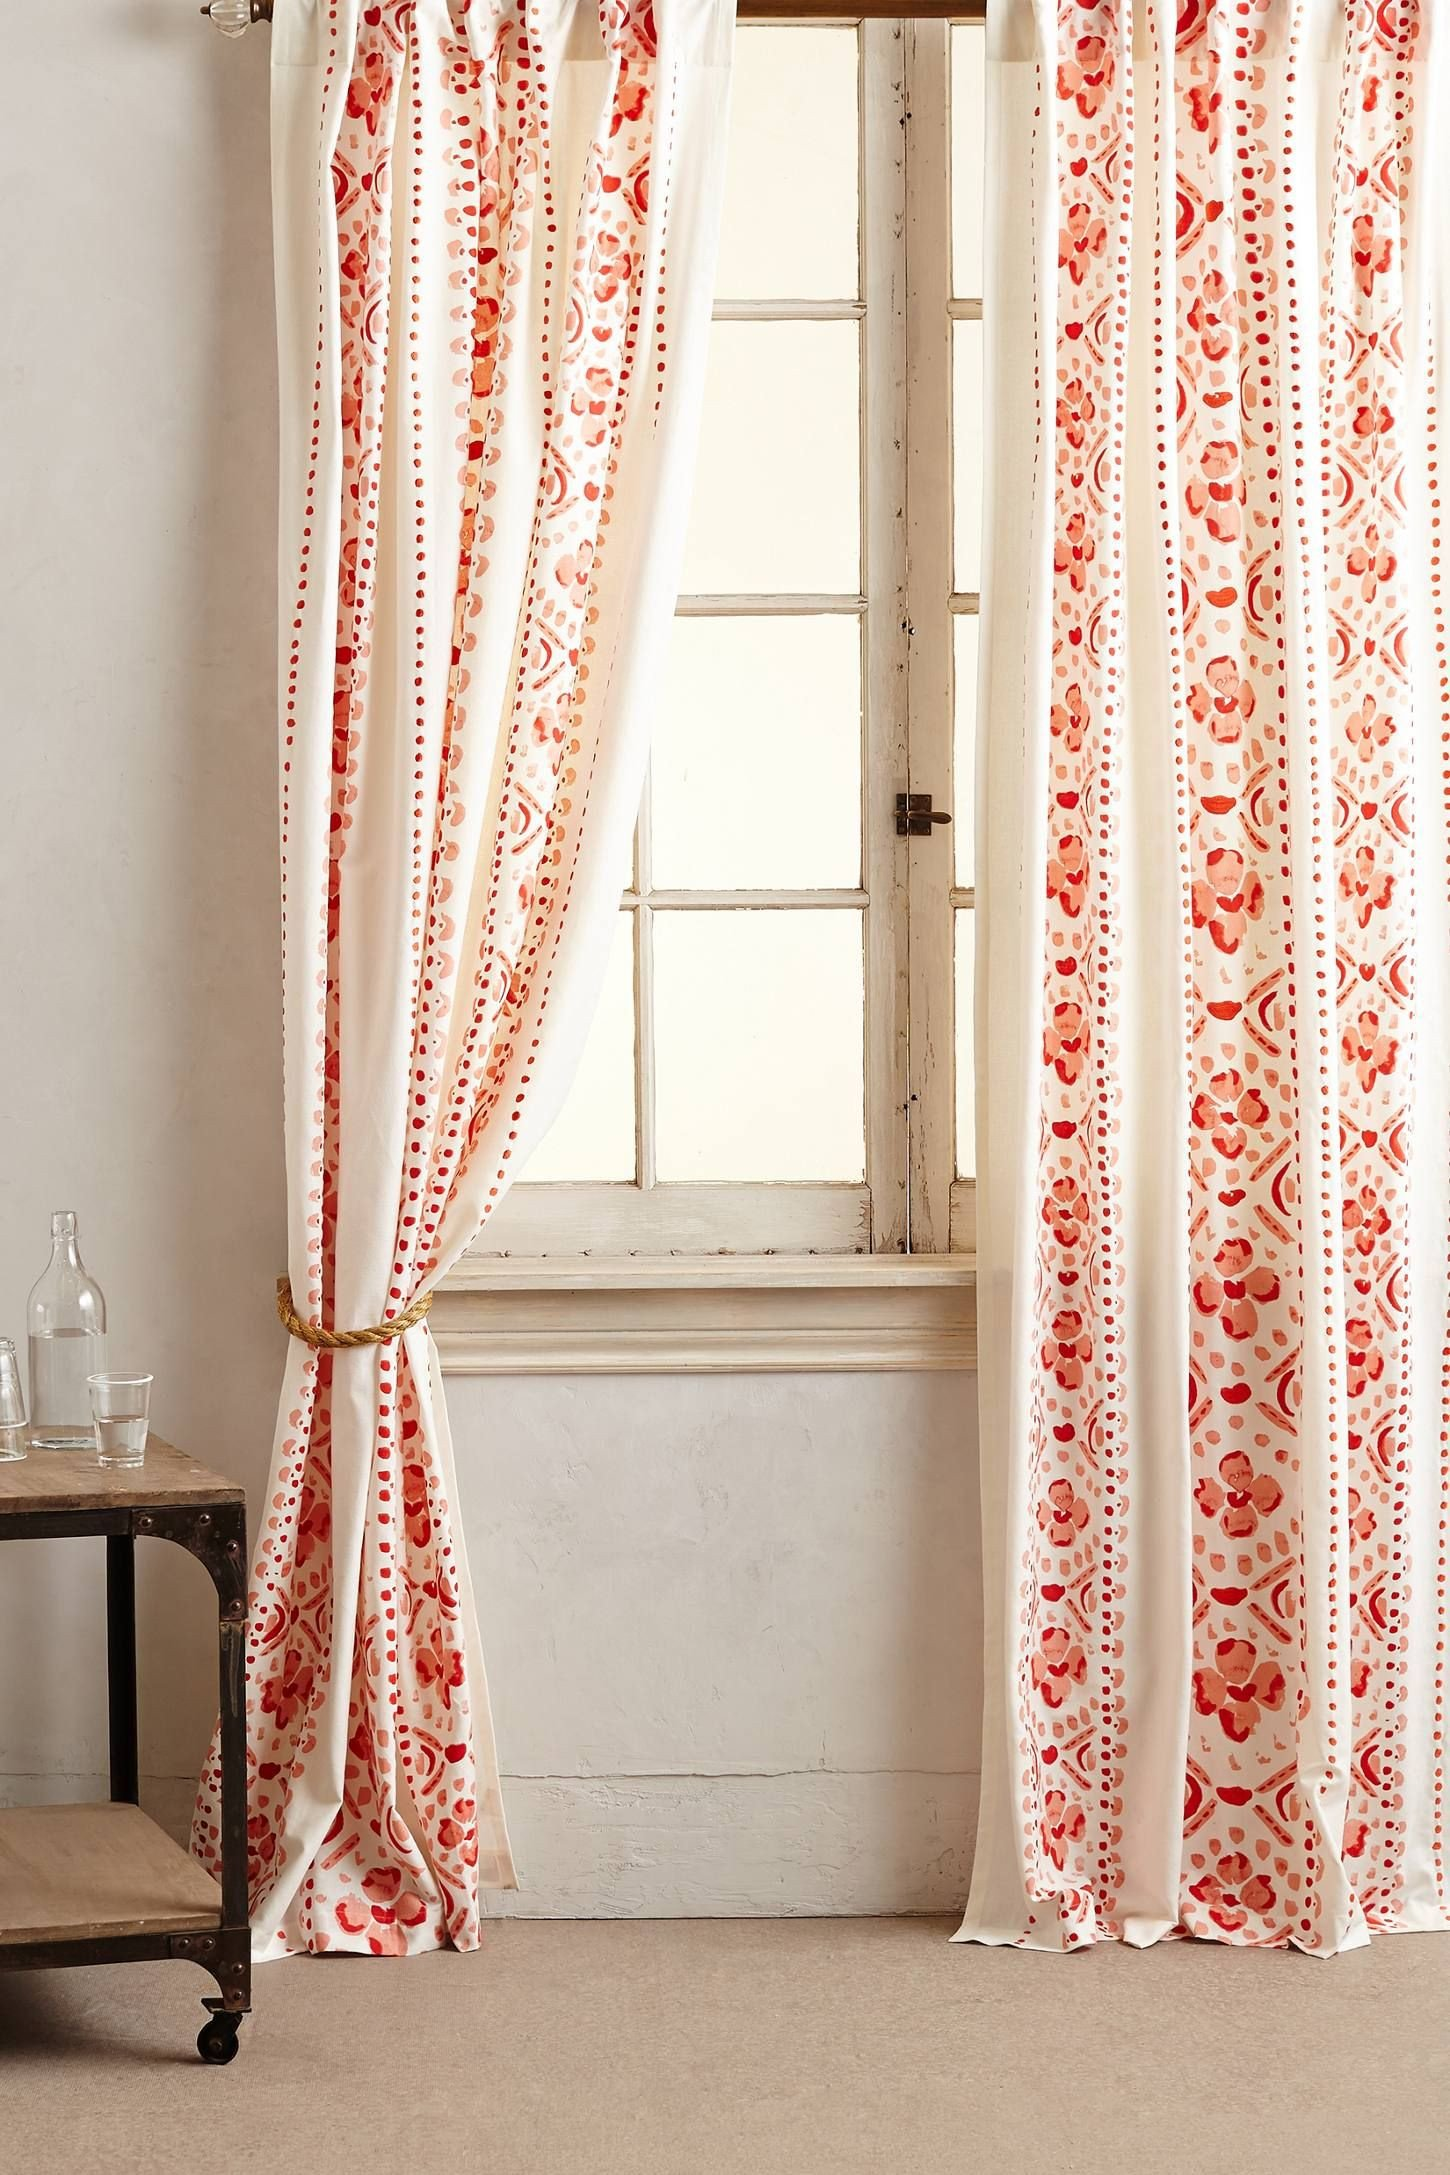 Red Curtains for Bedroom Beautiful Printed Lyndley Curtain for the Bedroom